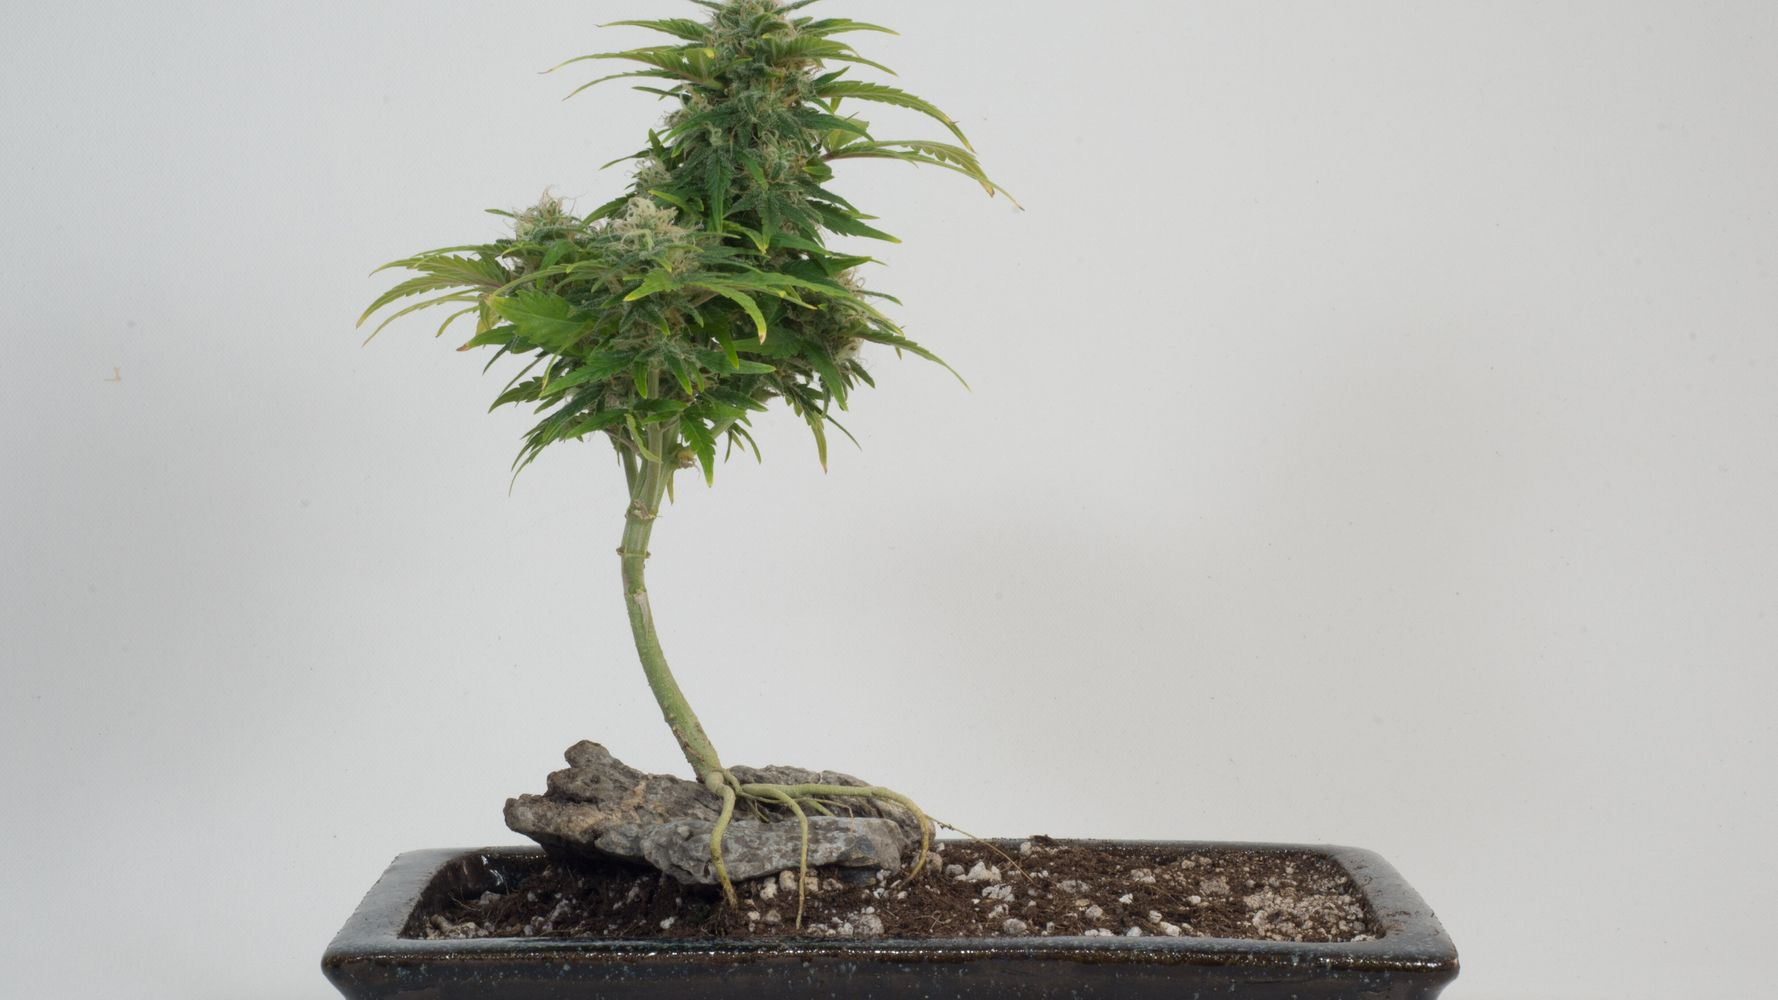 ▶ Peep This Cannabis Bonsai Tree